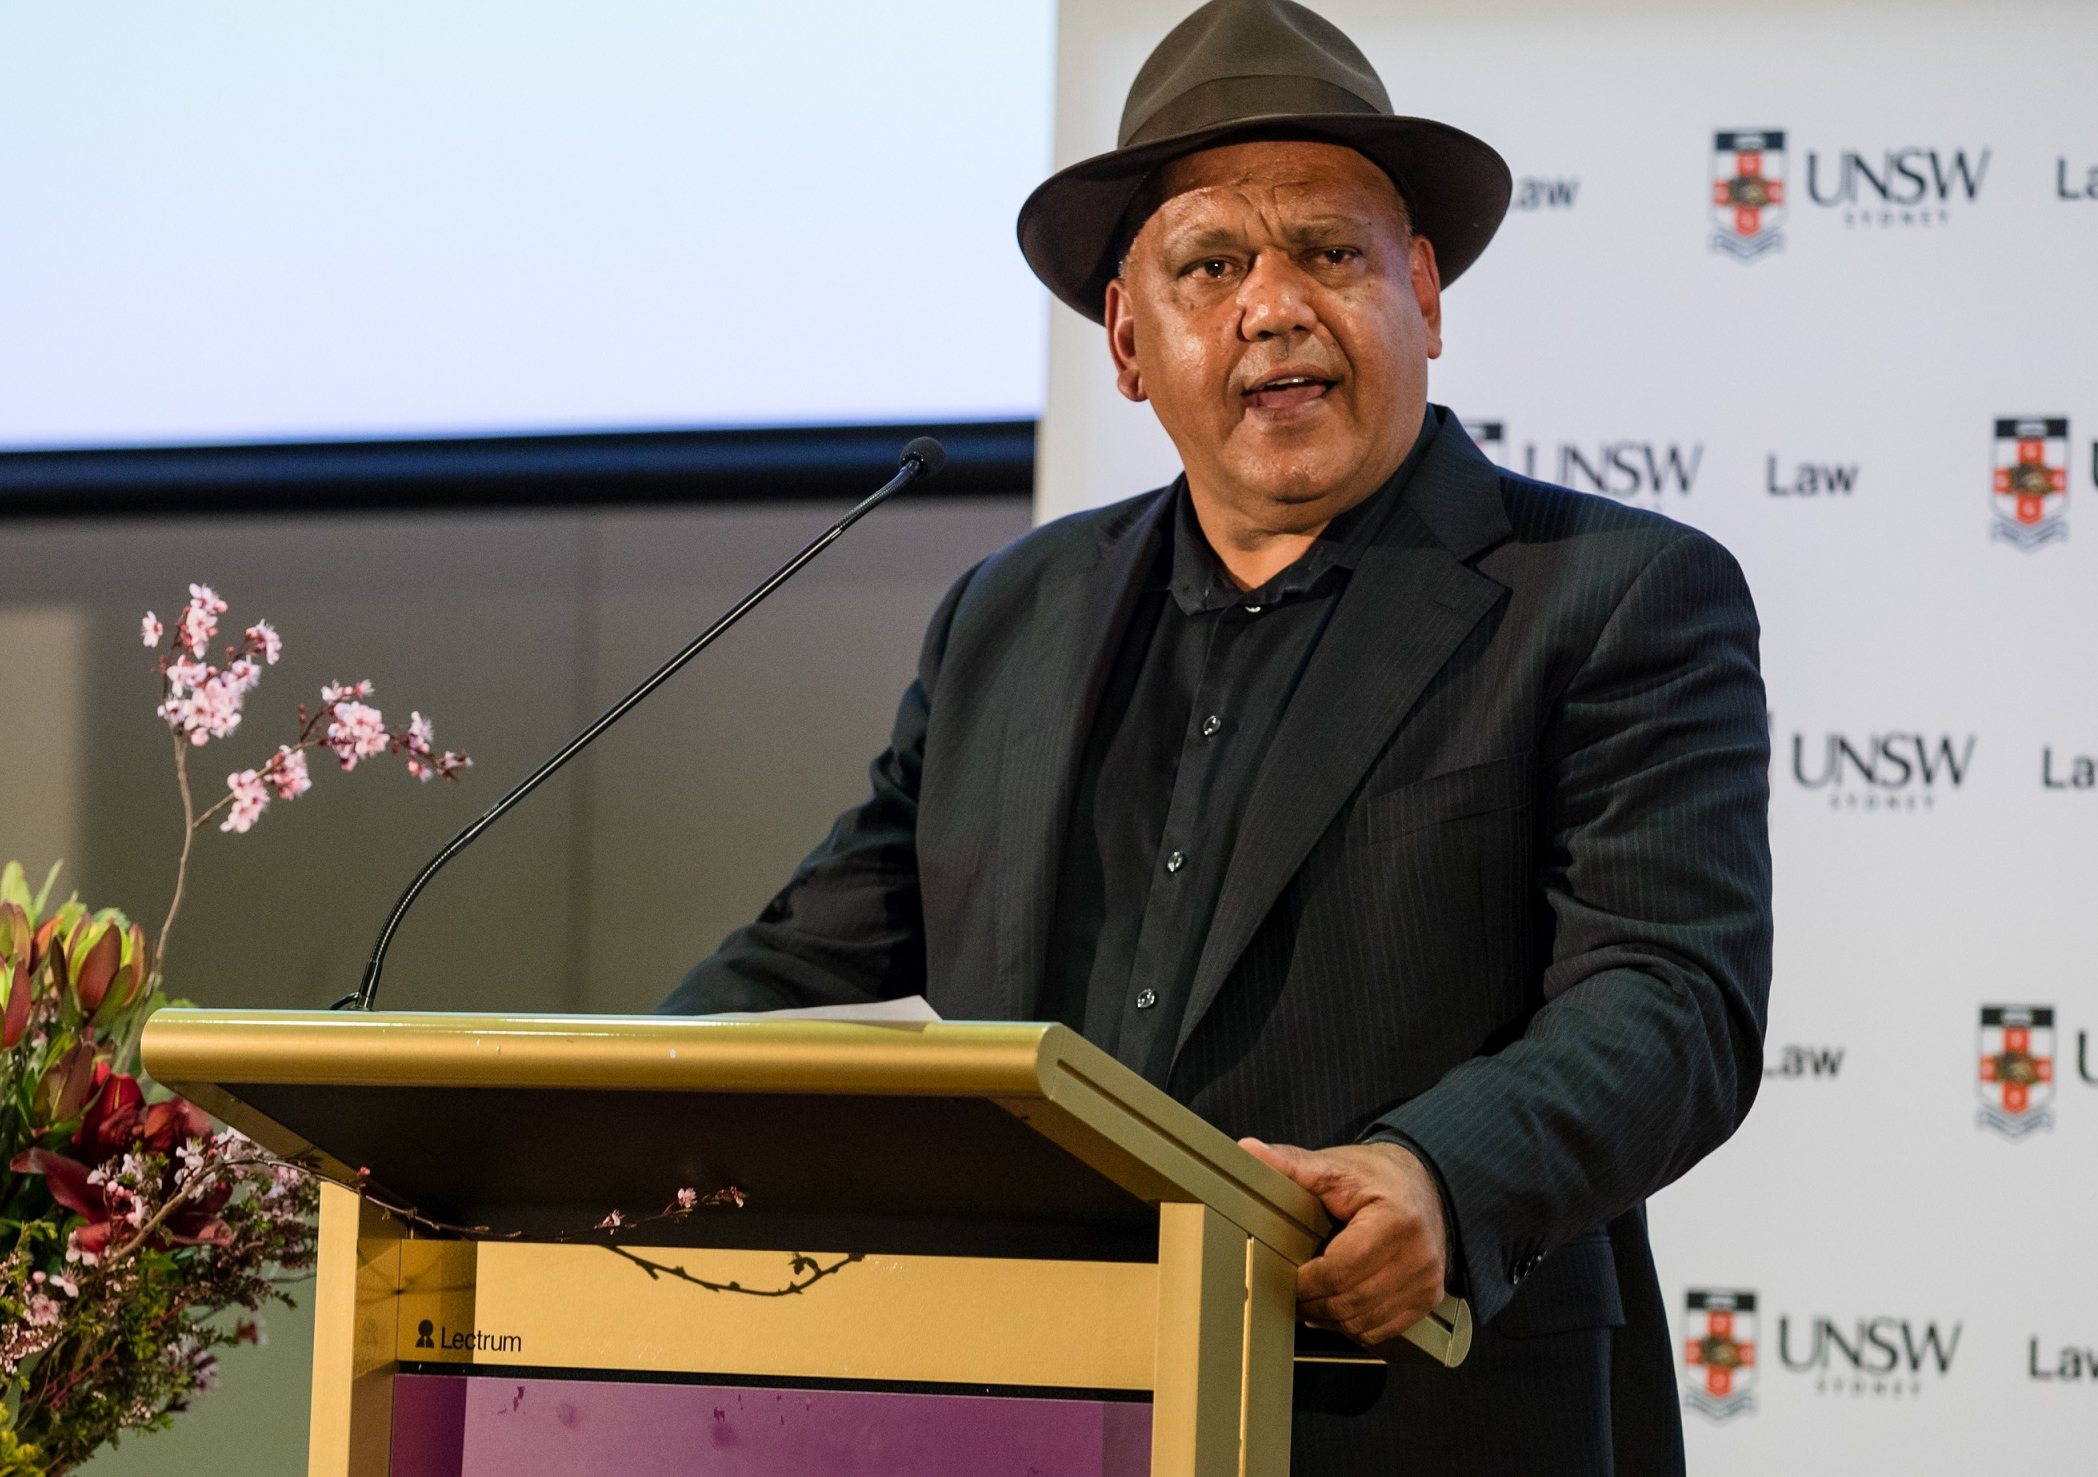 """Noel Pearson: """"We get the whole question of justice wrong if we predicate [it] on the basis of charity and handout."""""""